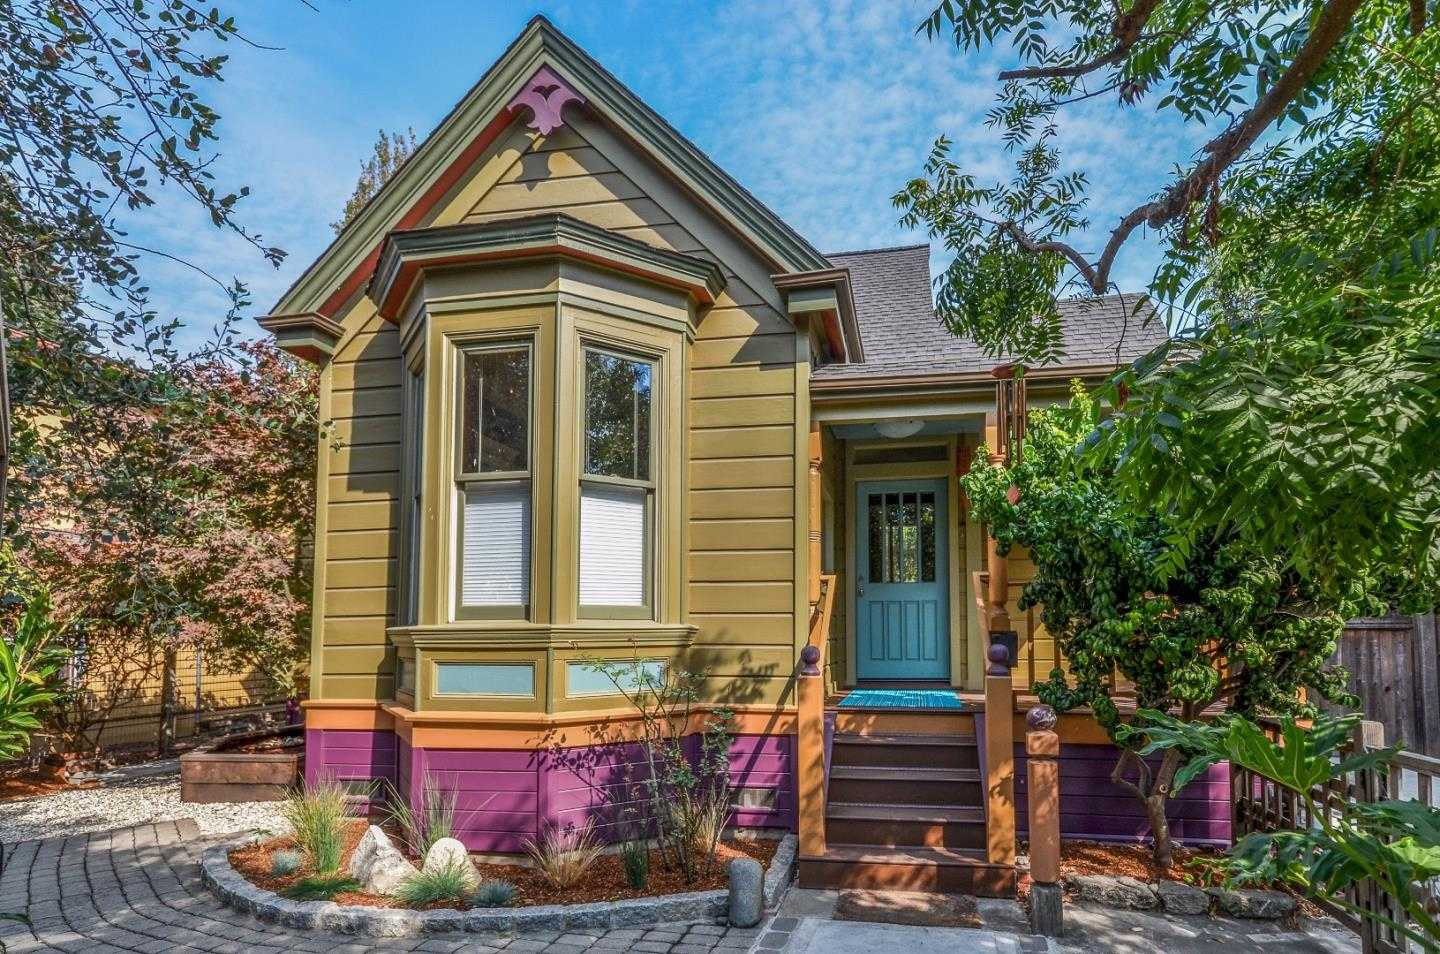 $1,149,500 - 4Br/2Ba -  for Sale in Santa Cruz